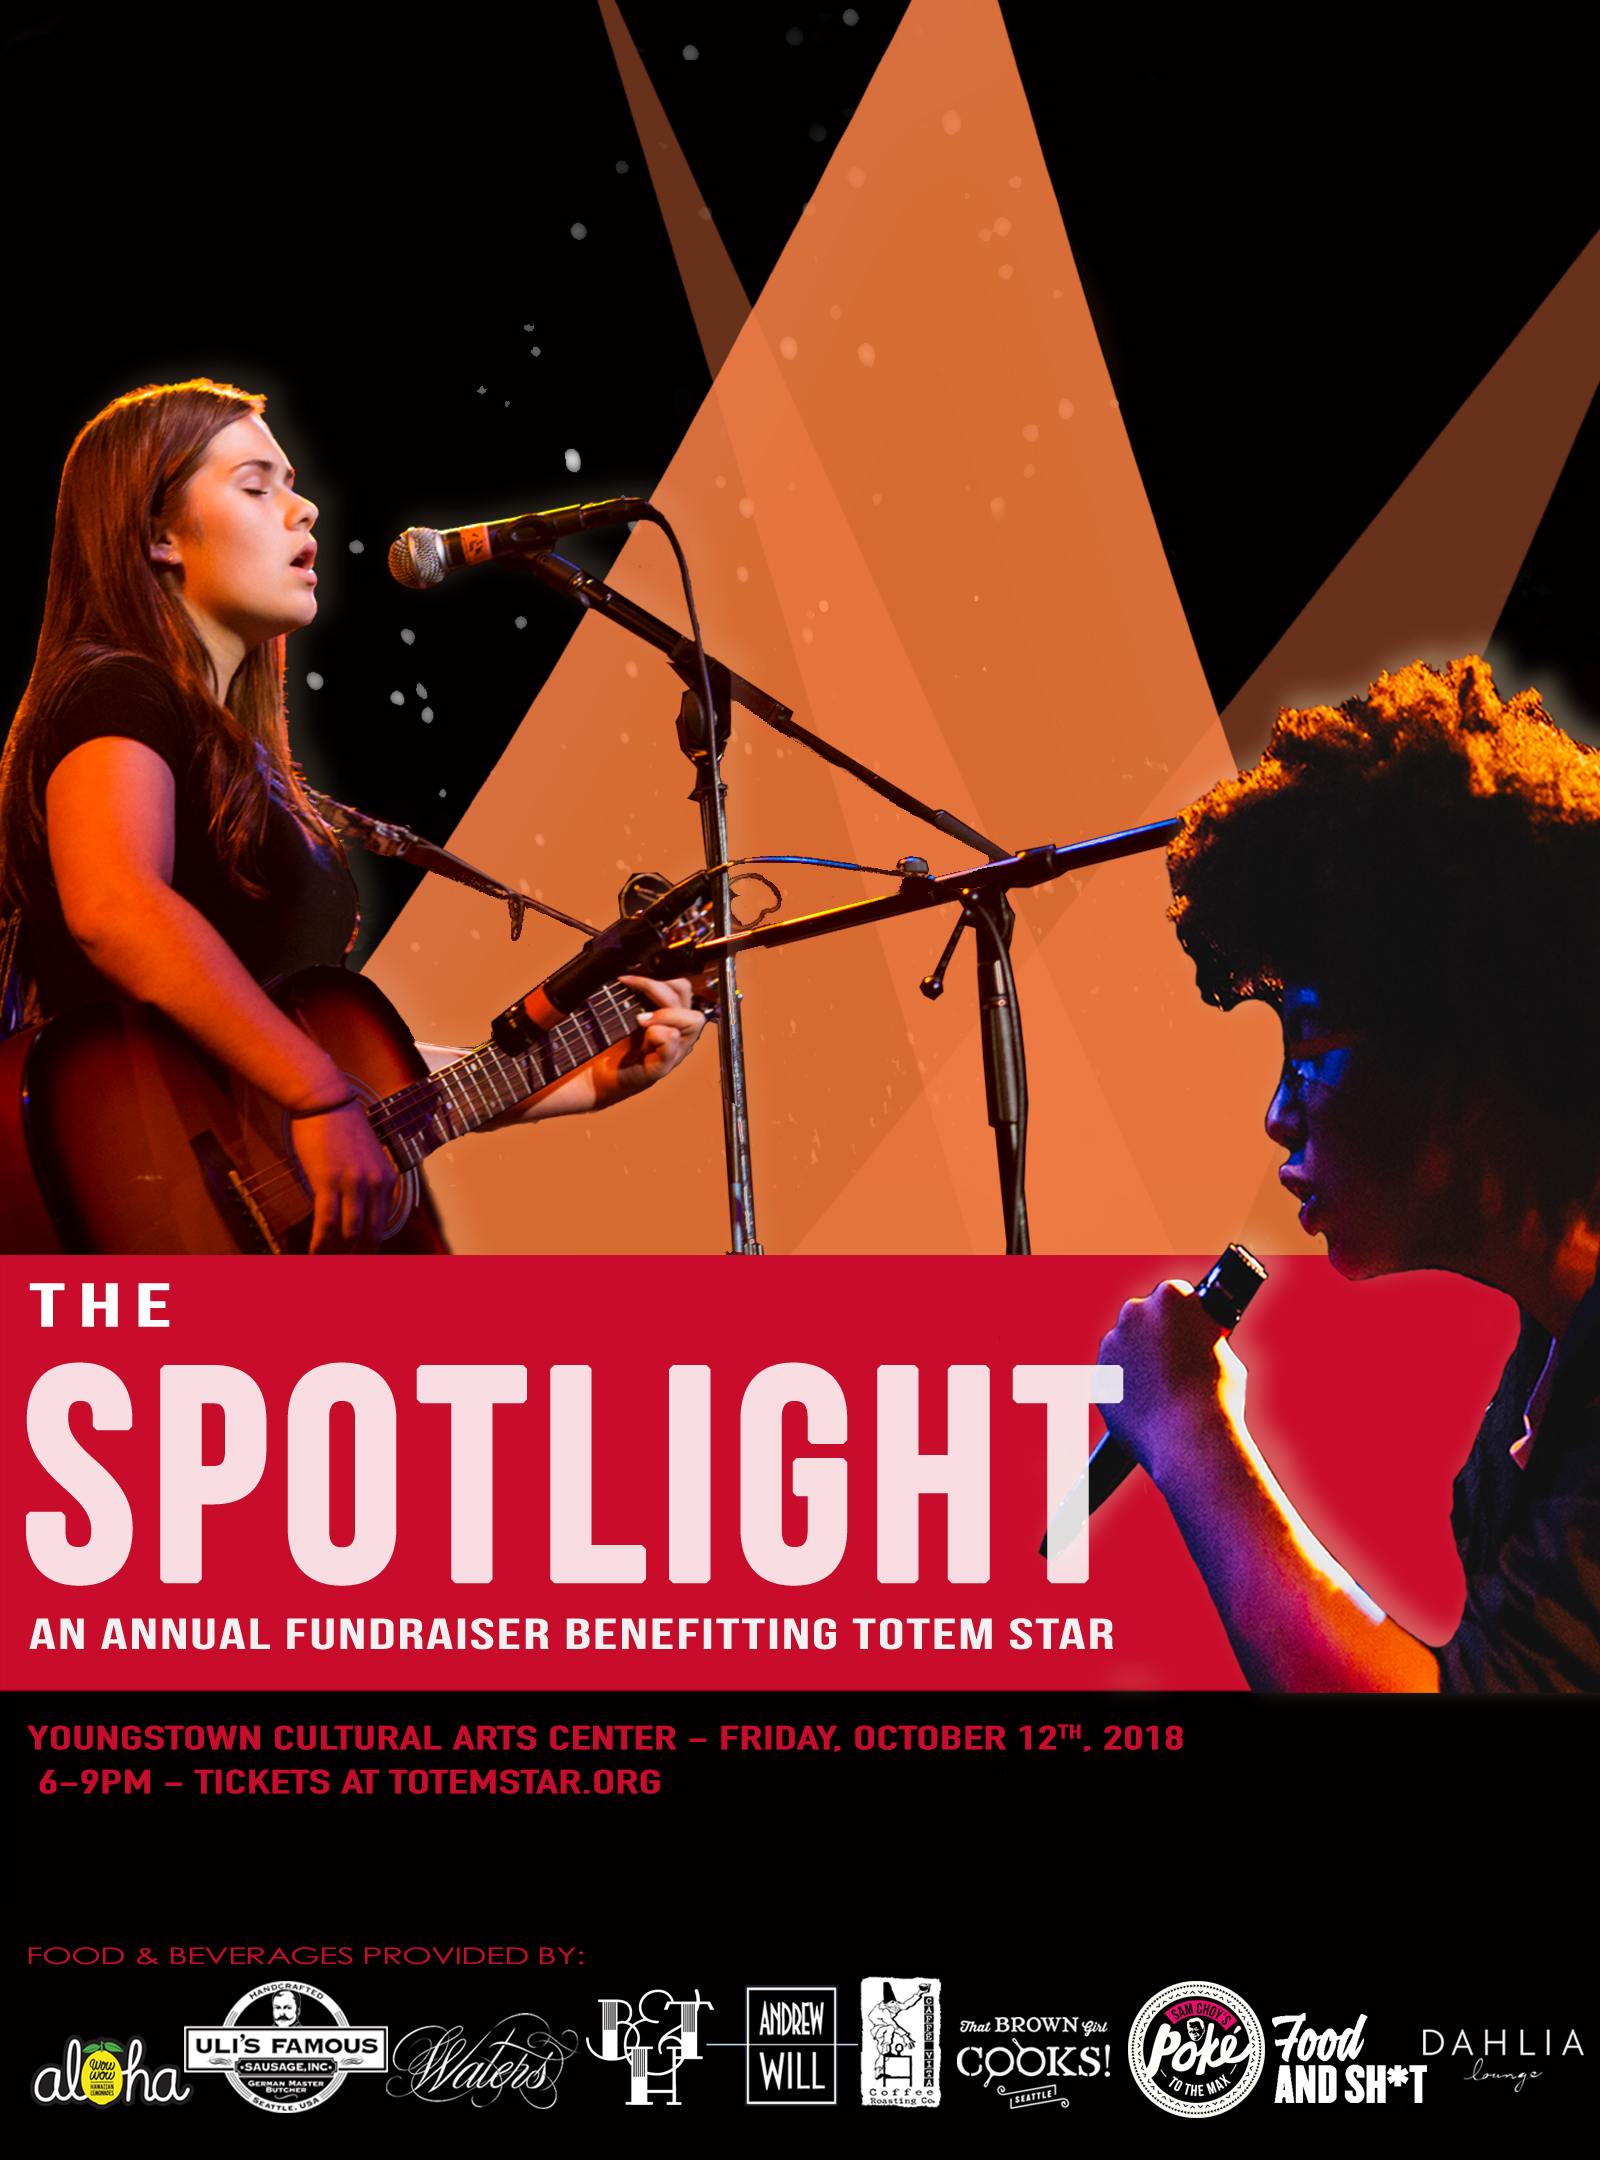 The-Spotlight-Event-Graphic-Final-WEB.jpg